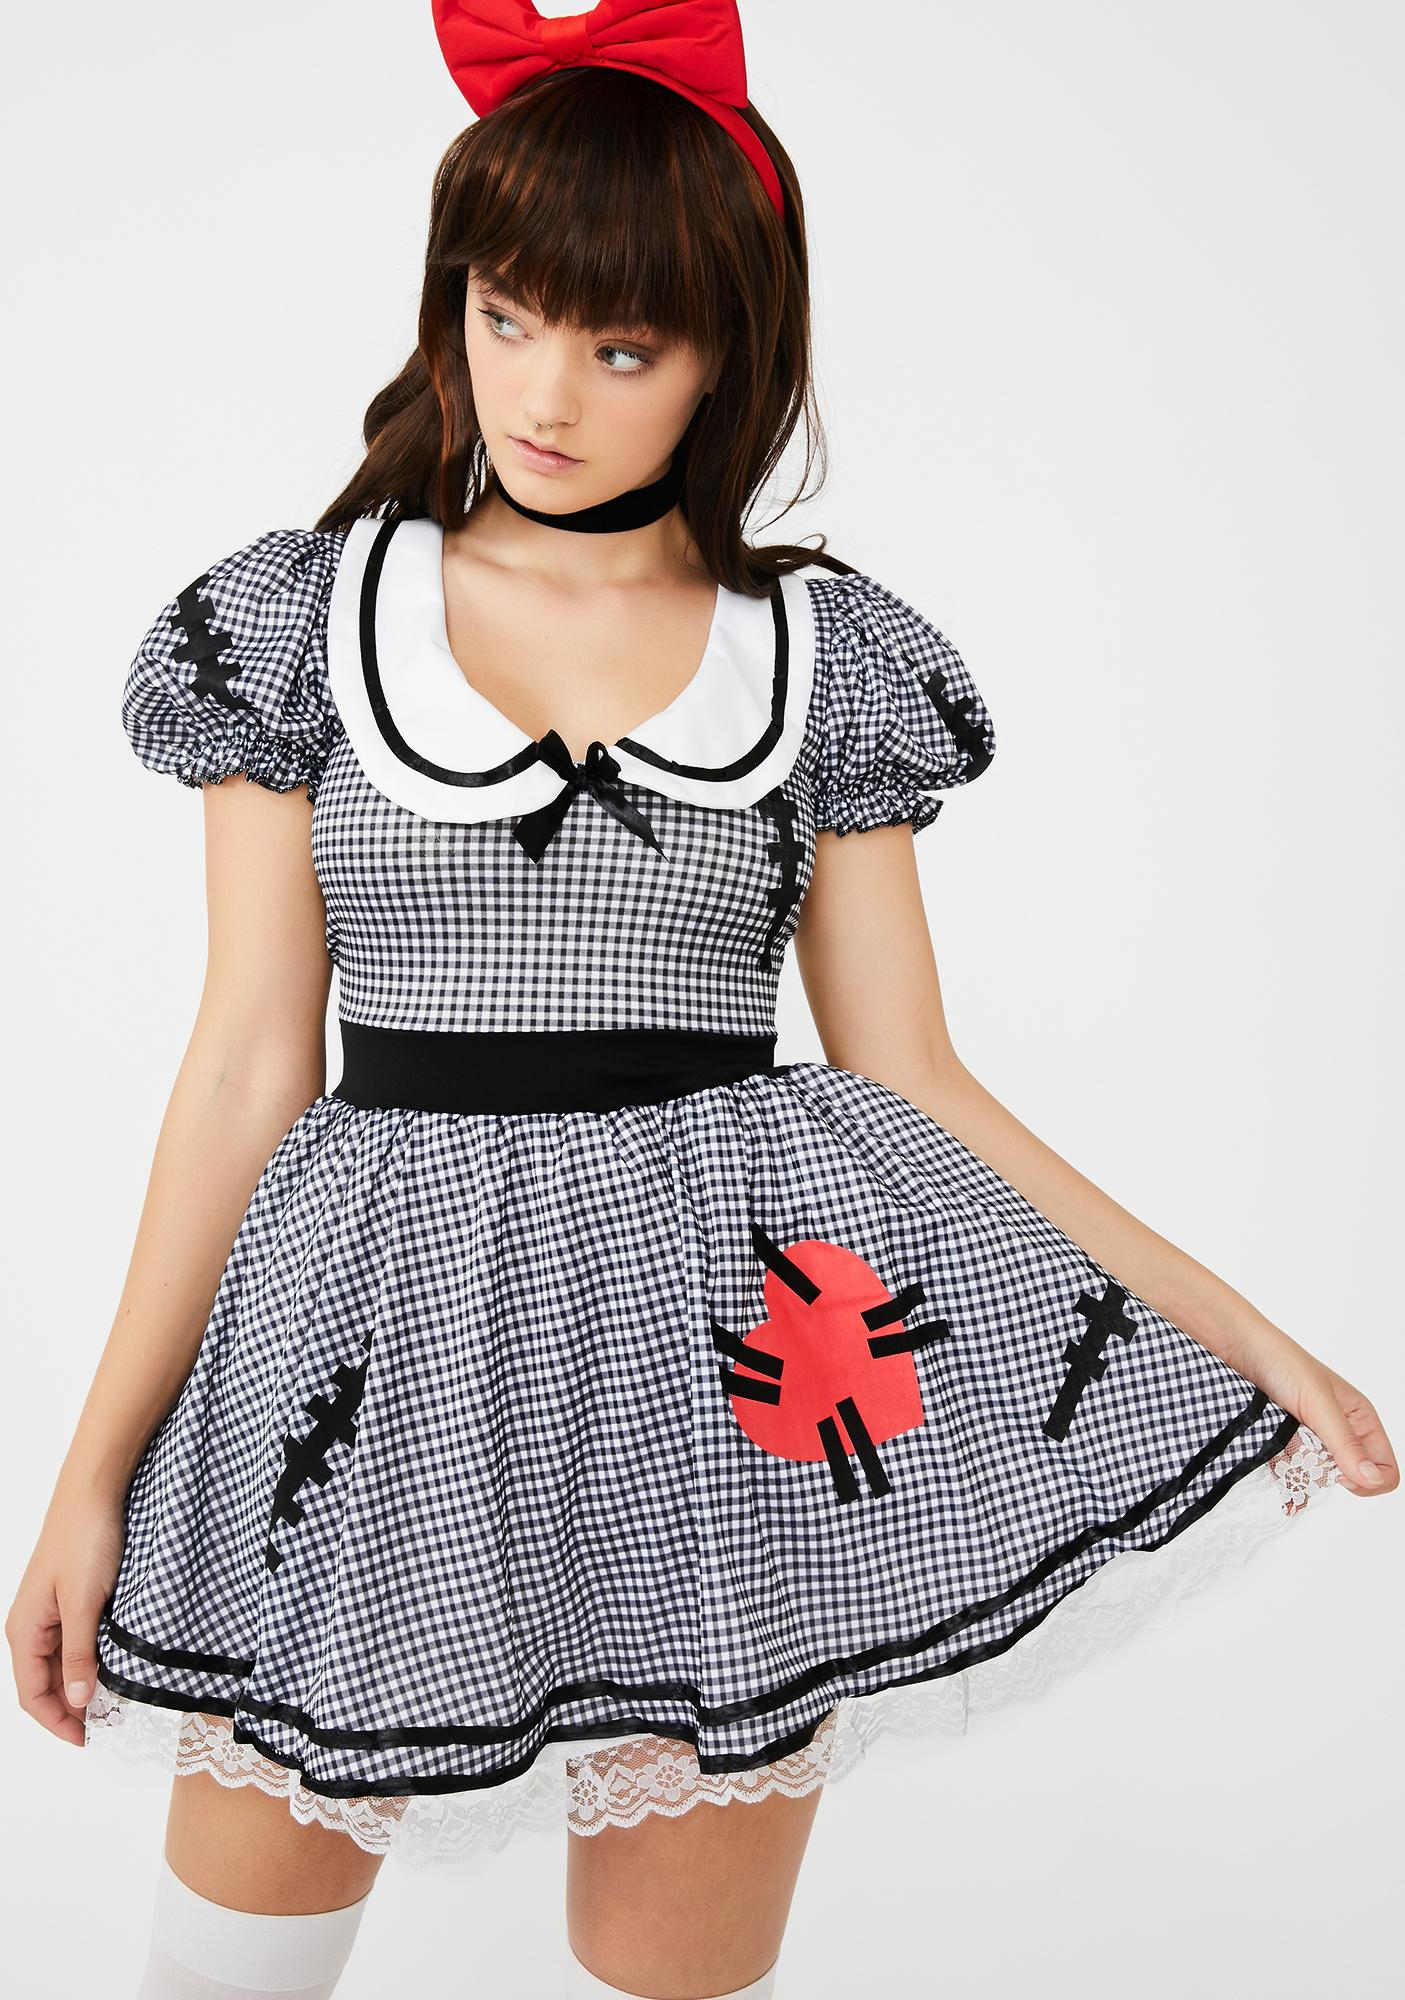 Wind Me Up Dolly Costume